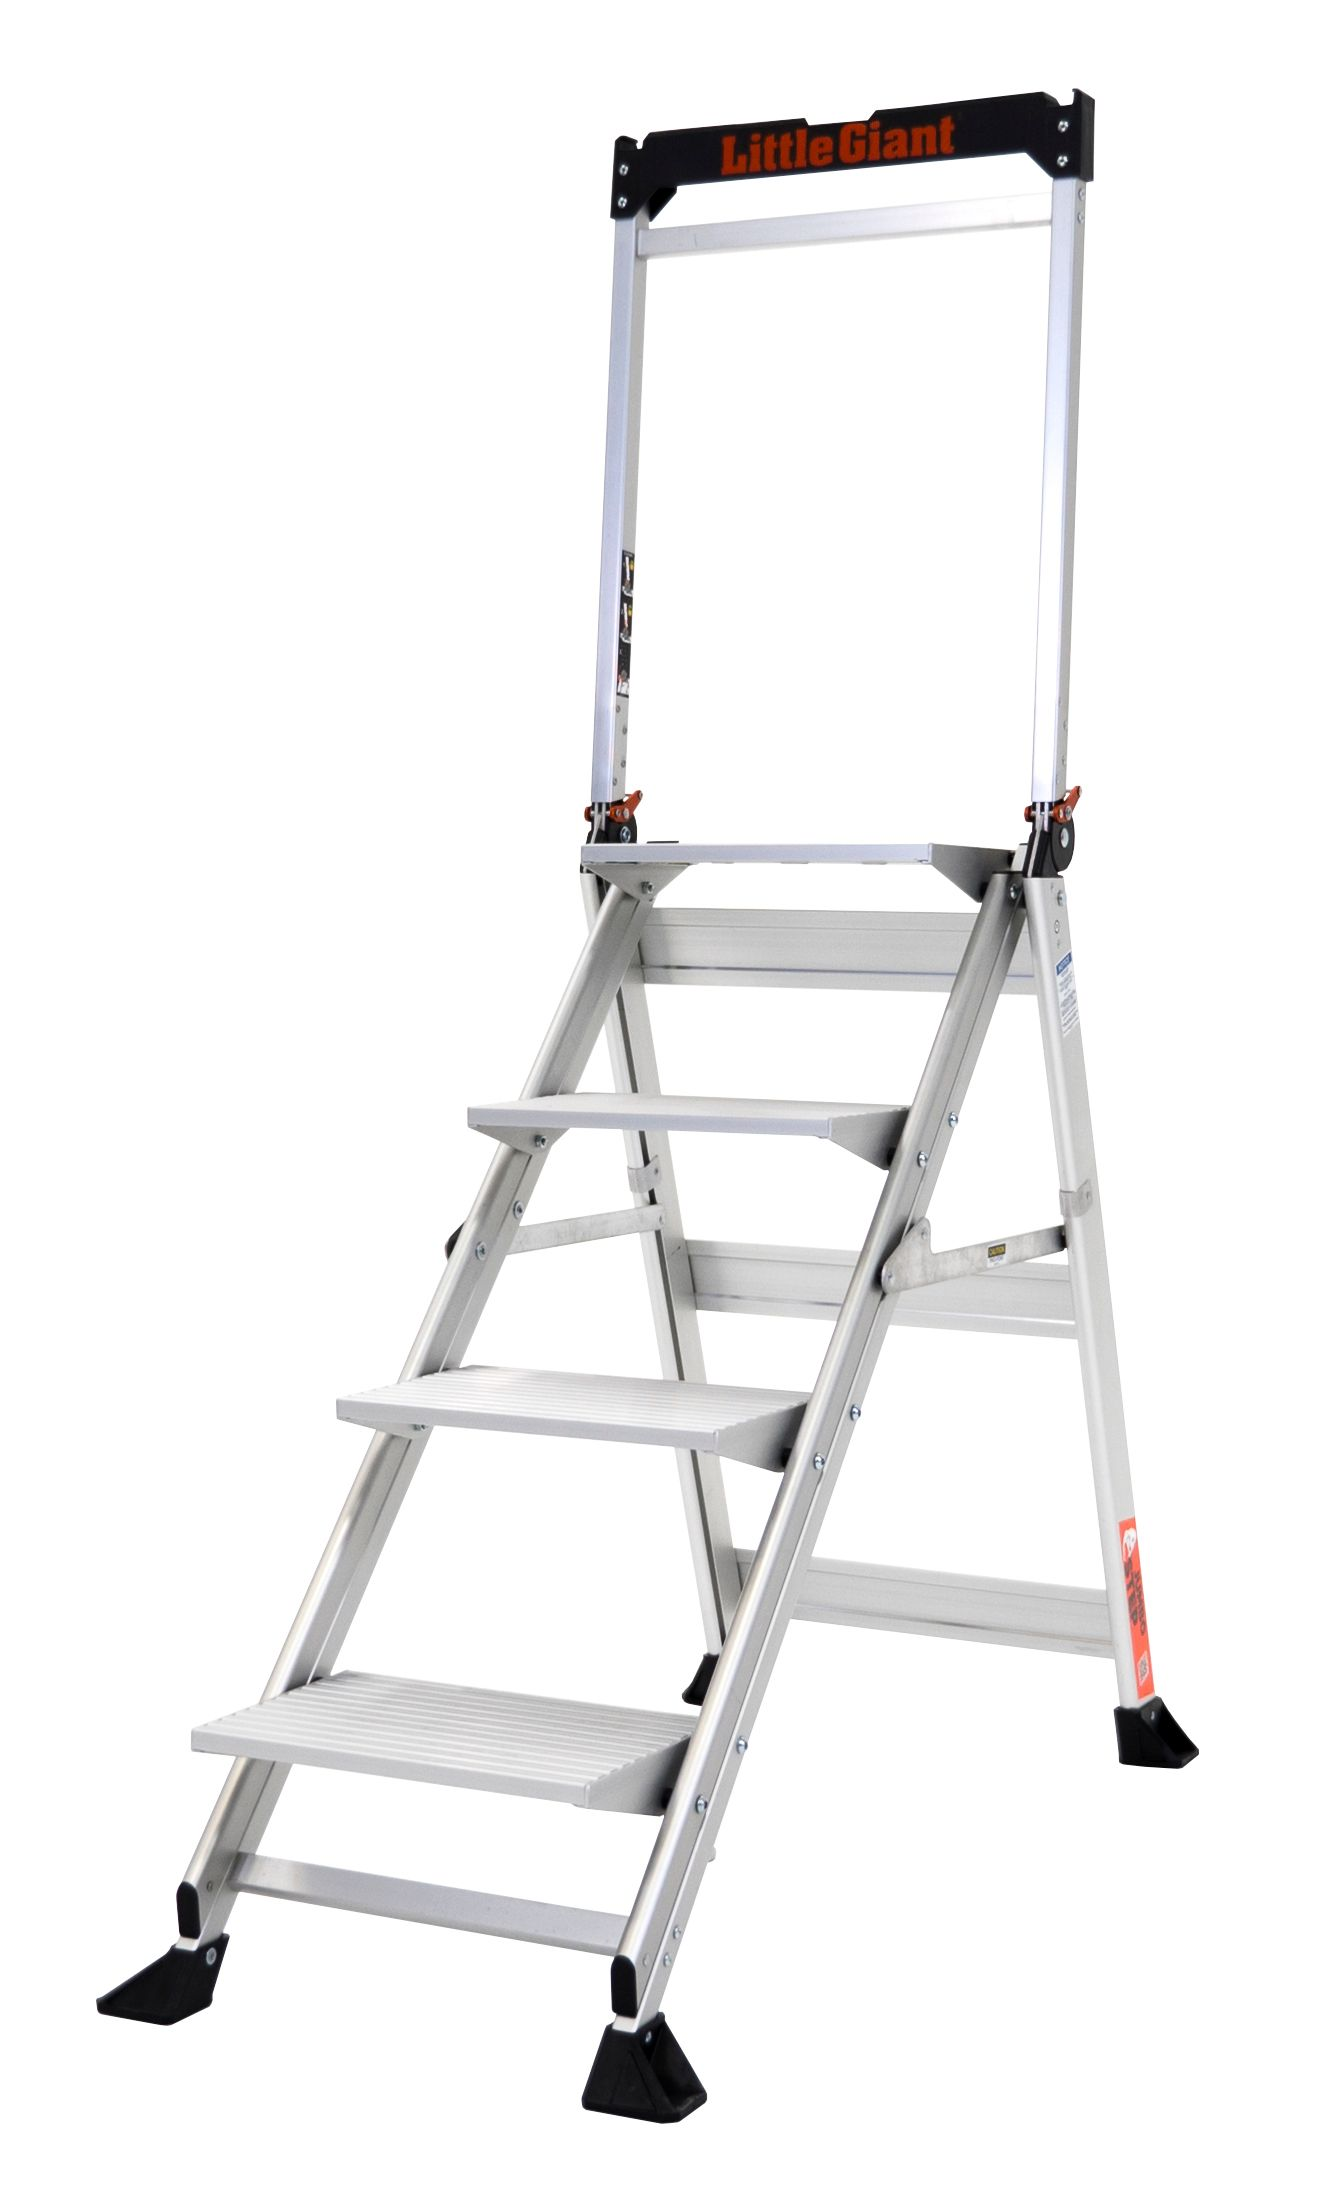 Admirable Little Giant Ladders 4 Step 375 Lbs Capacity Silver Machost Co Dining Chair Design Ideas Machostcouk